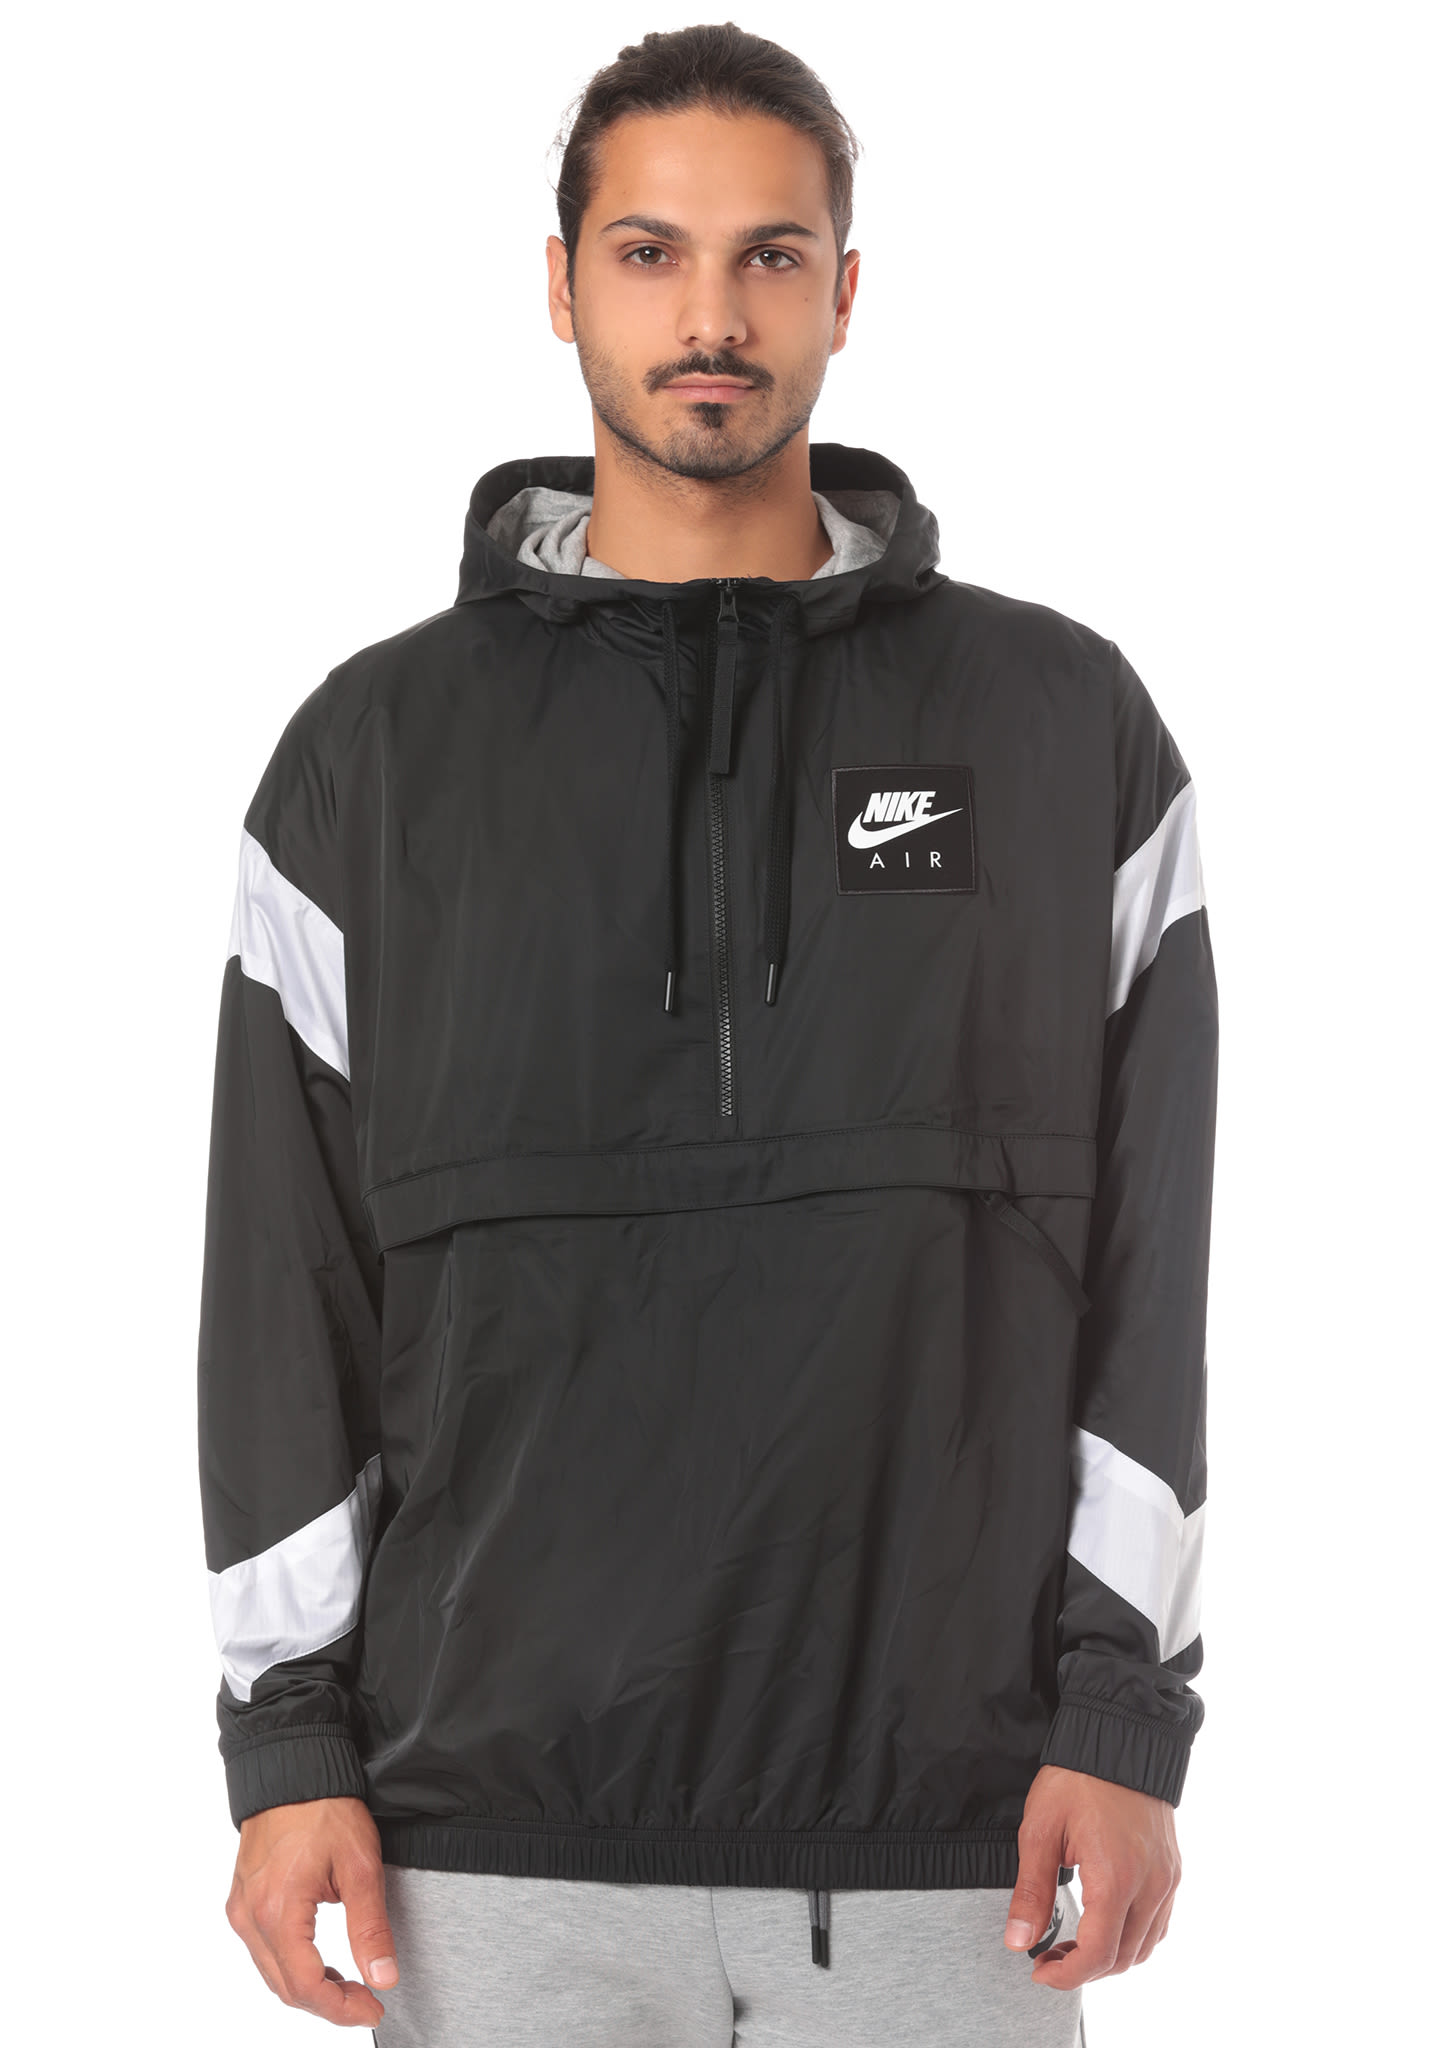 7e12532d5dba NIKE SPORTSWEAR Air - Jacket for Men - Black - Planet Sports